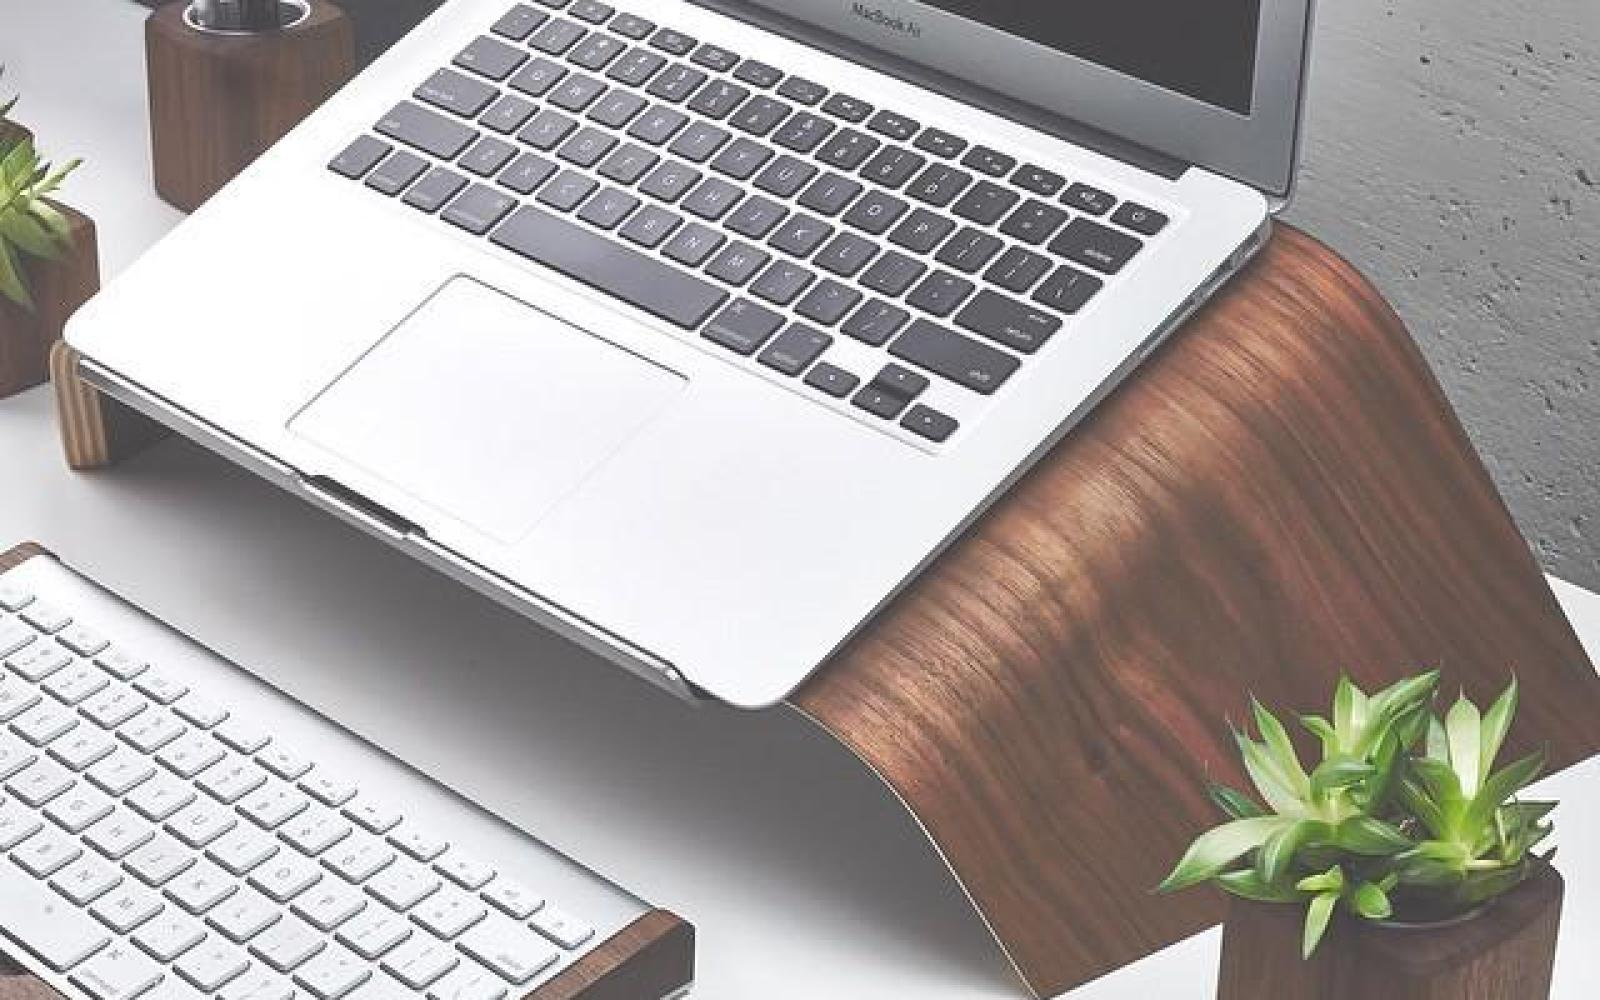 Give your MacBook a boost with this stunning USA-sourced wooden stand from Grovemade